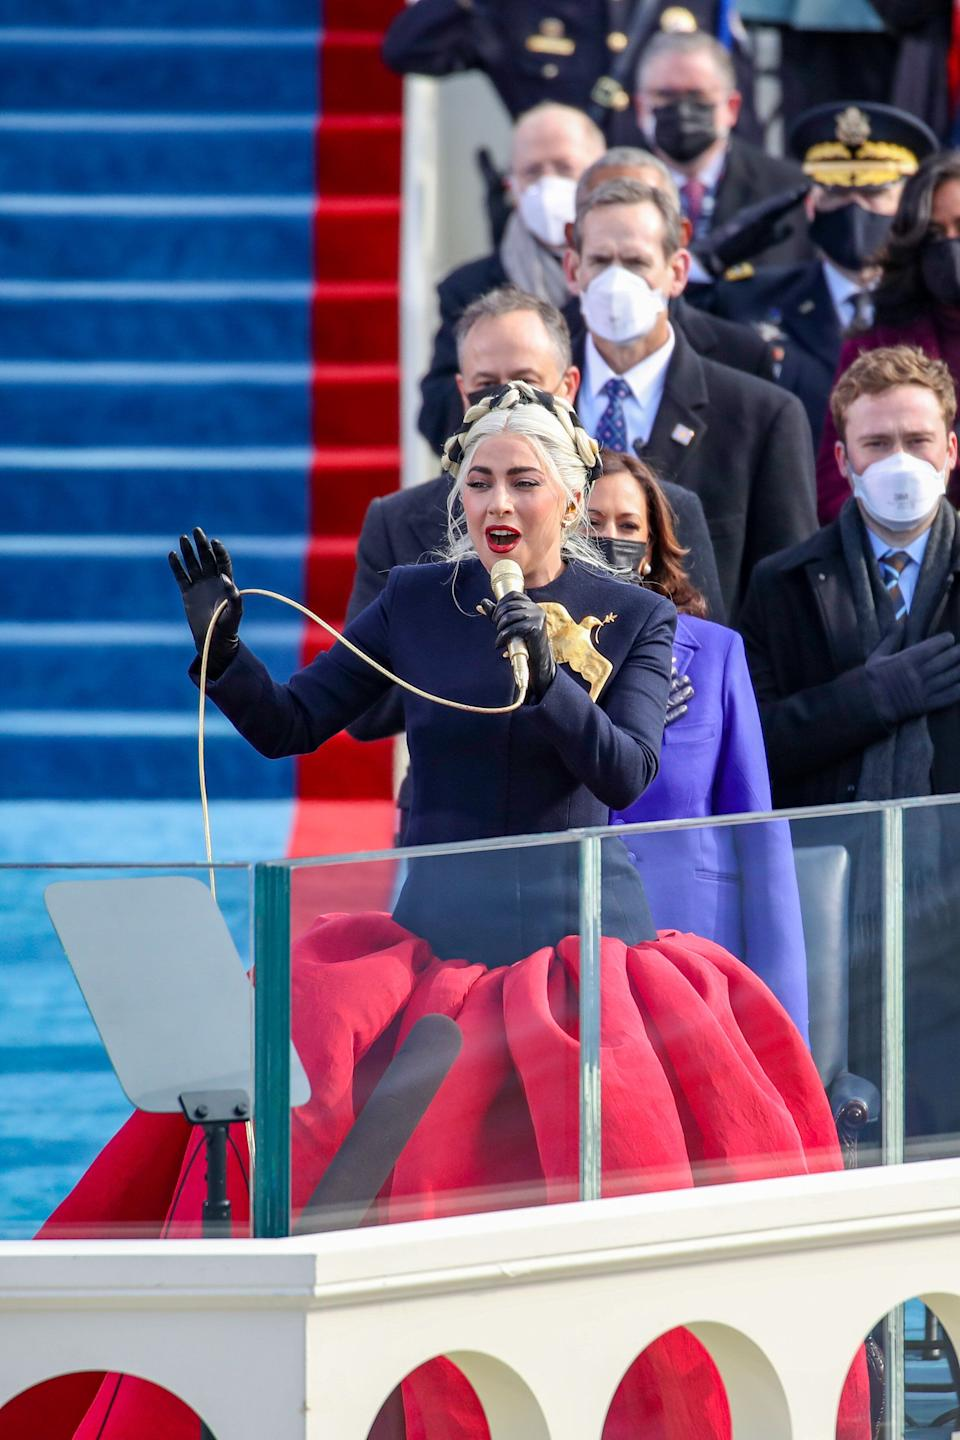 Gaga performing during the inauguration (Photo: Rob Carr via Getty Images)